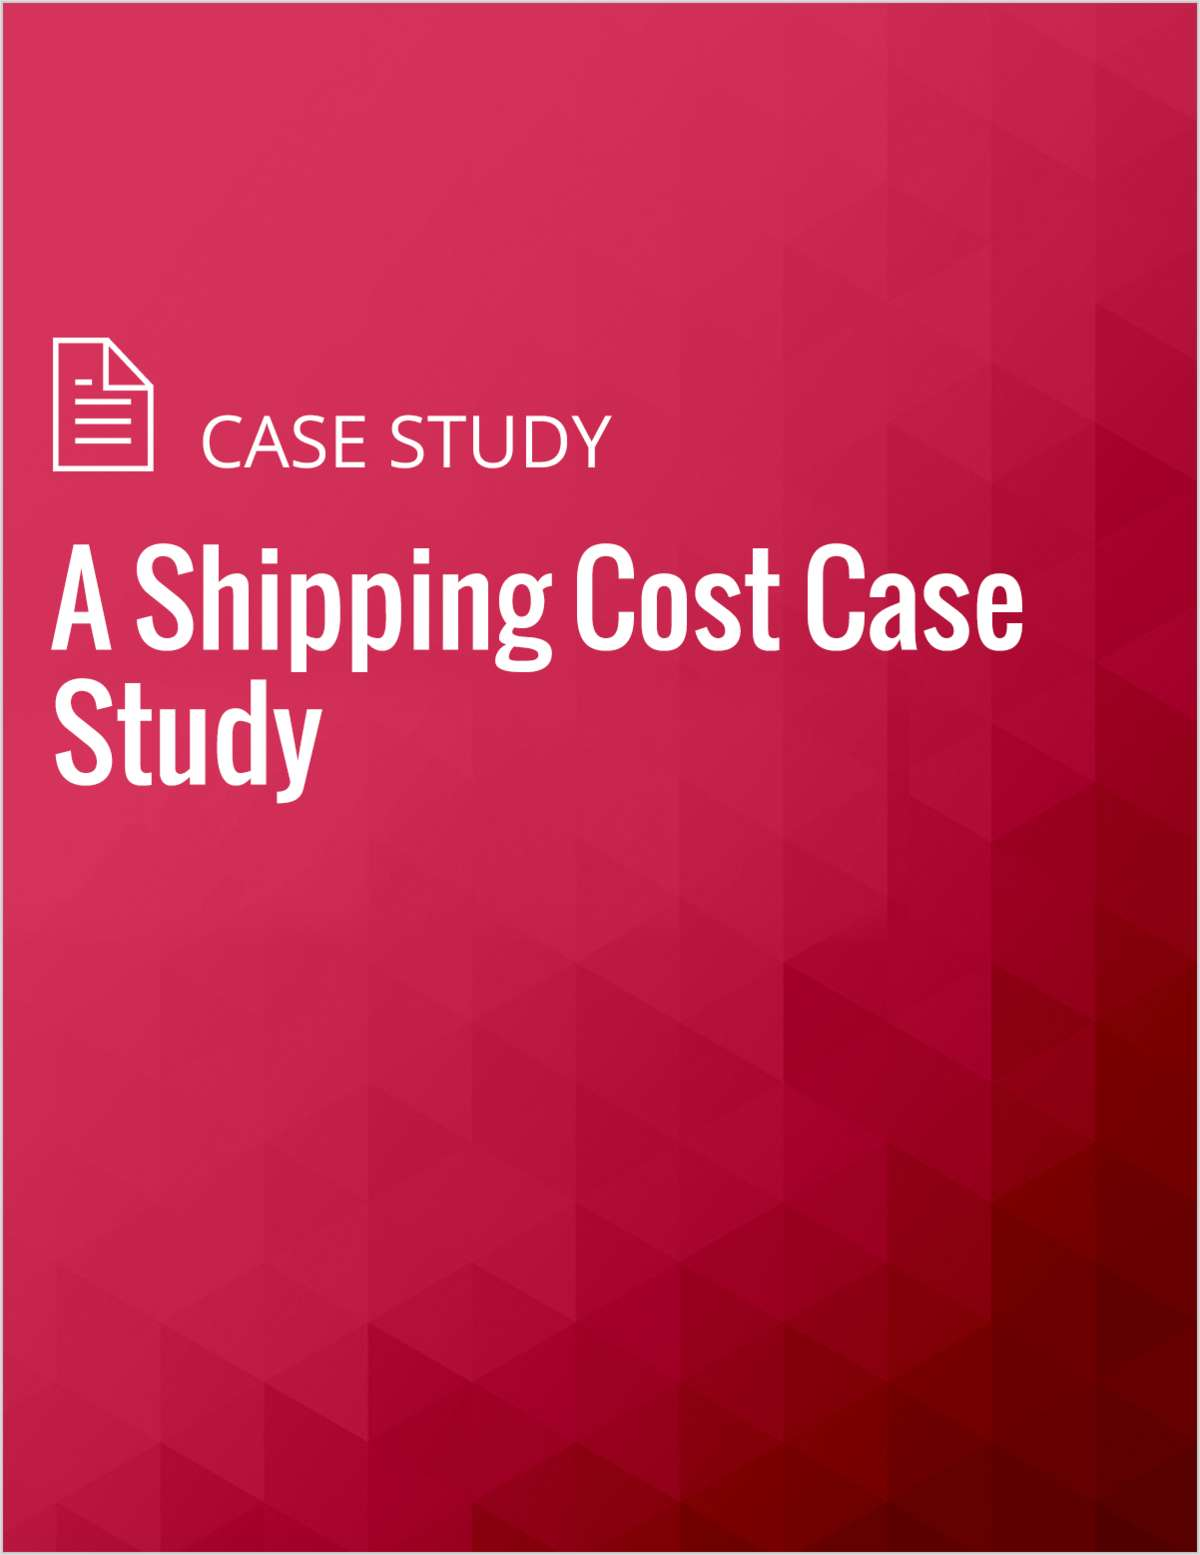 A Shipping Cost Case Study